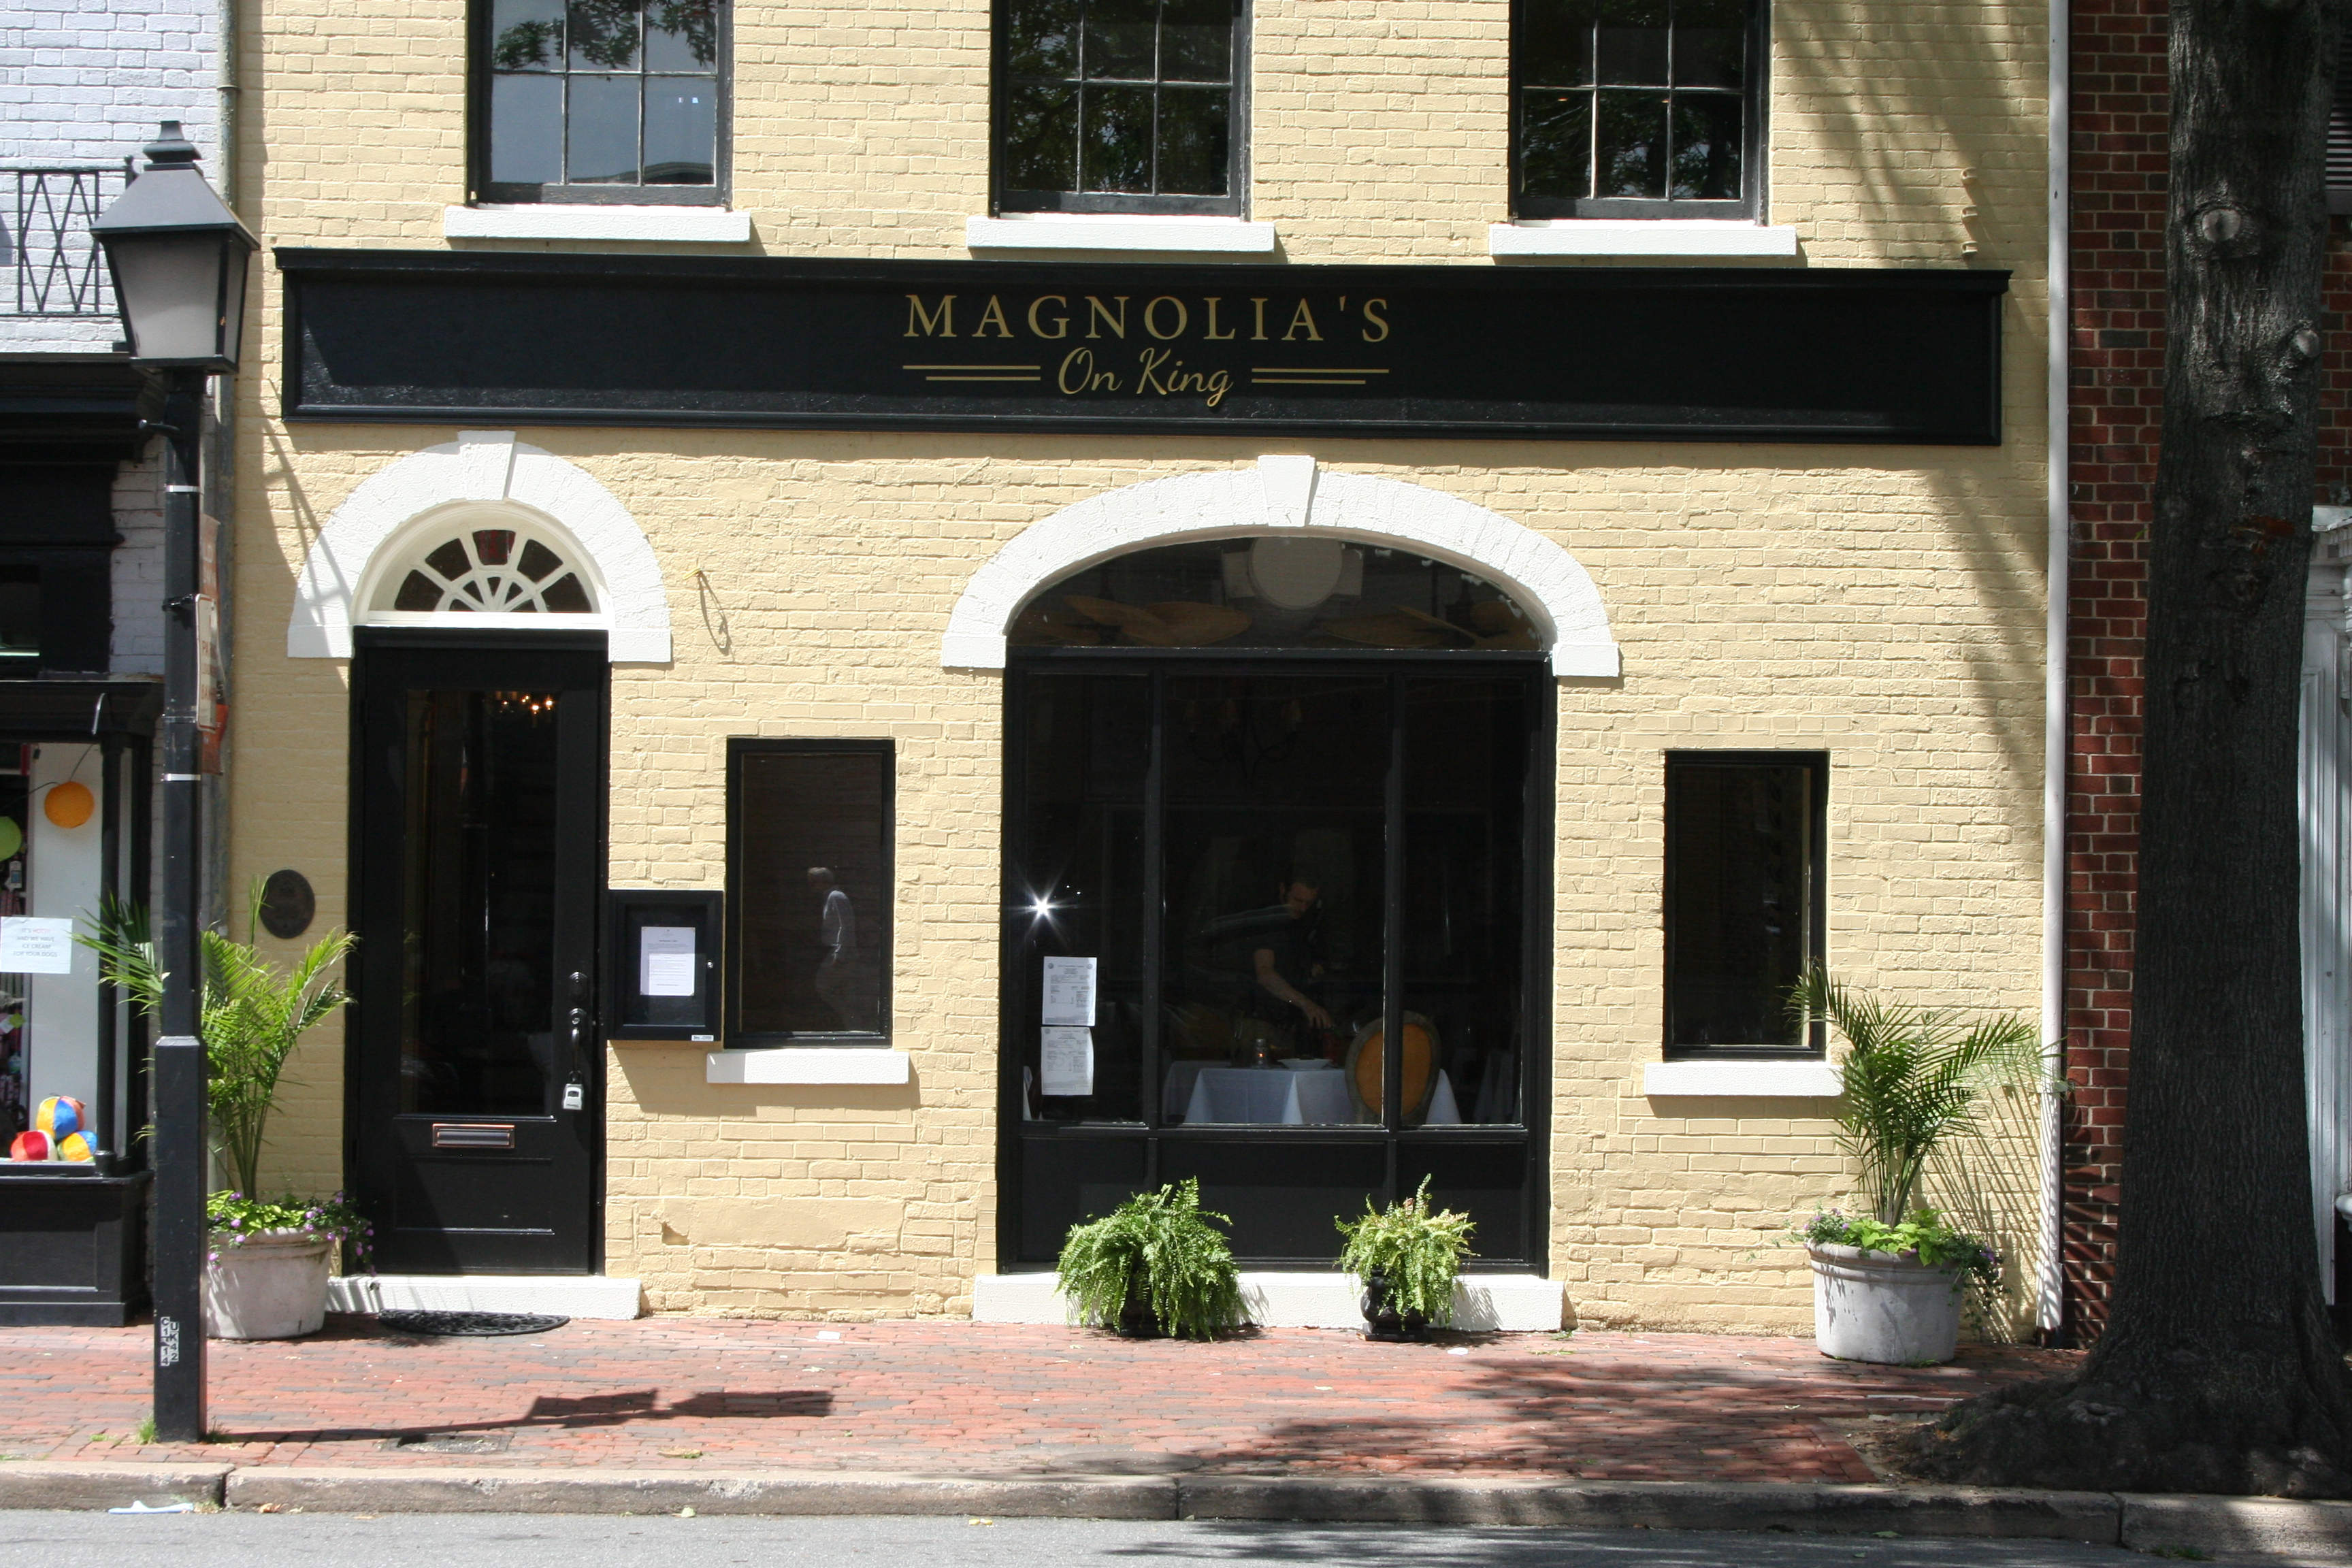 Magnolia's on King opened in Old Town on July 1 serving